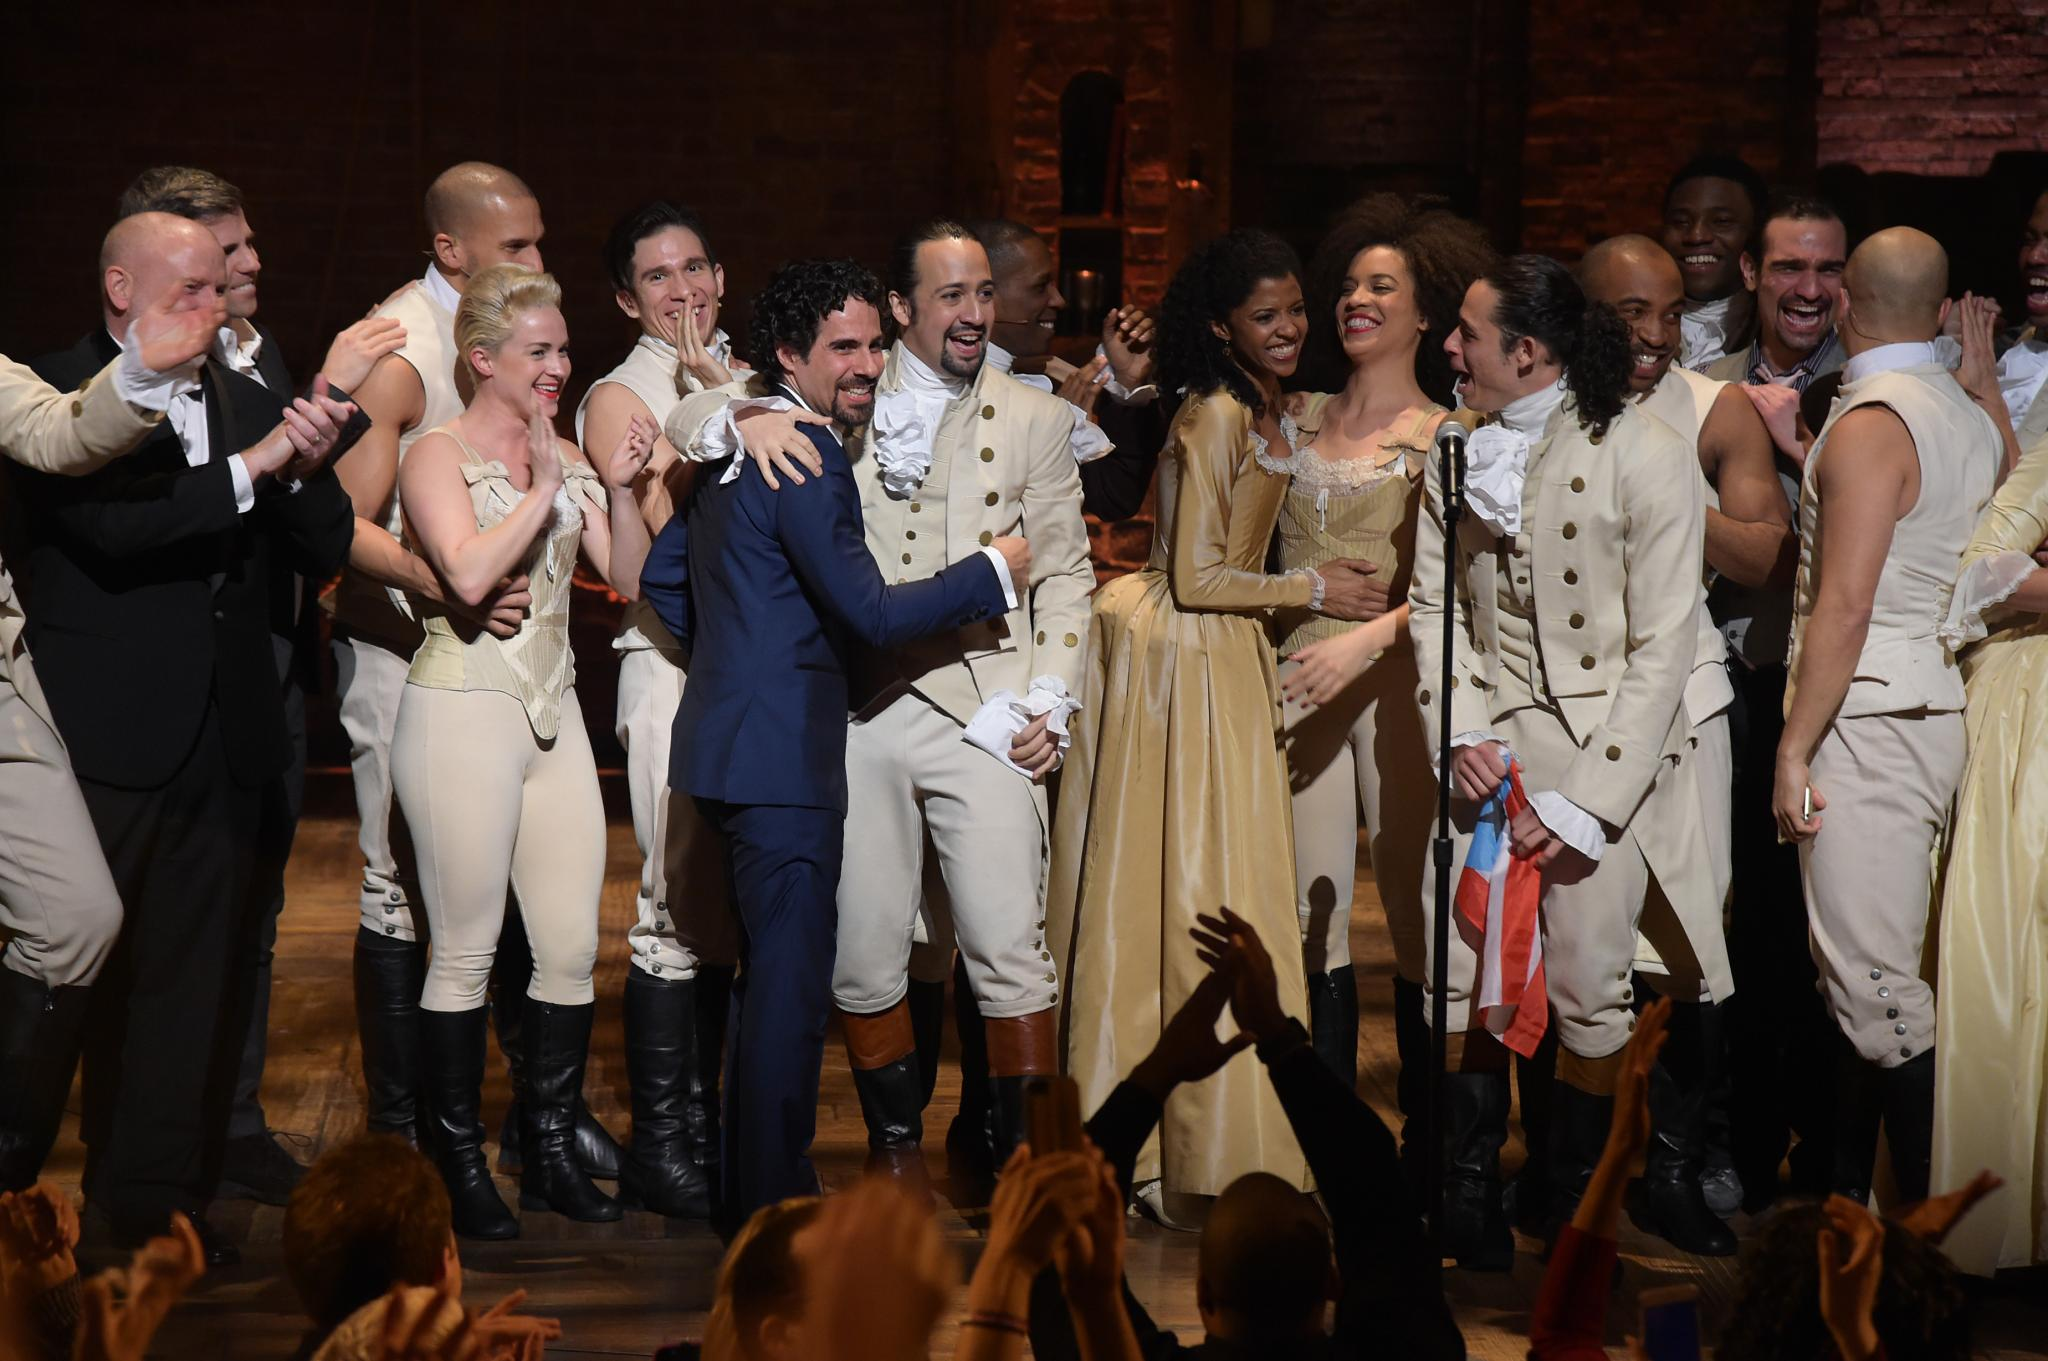 Hamilton Could Be Sued For Not Hiring White Actors If This Court Ruling Is Upheld